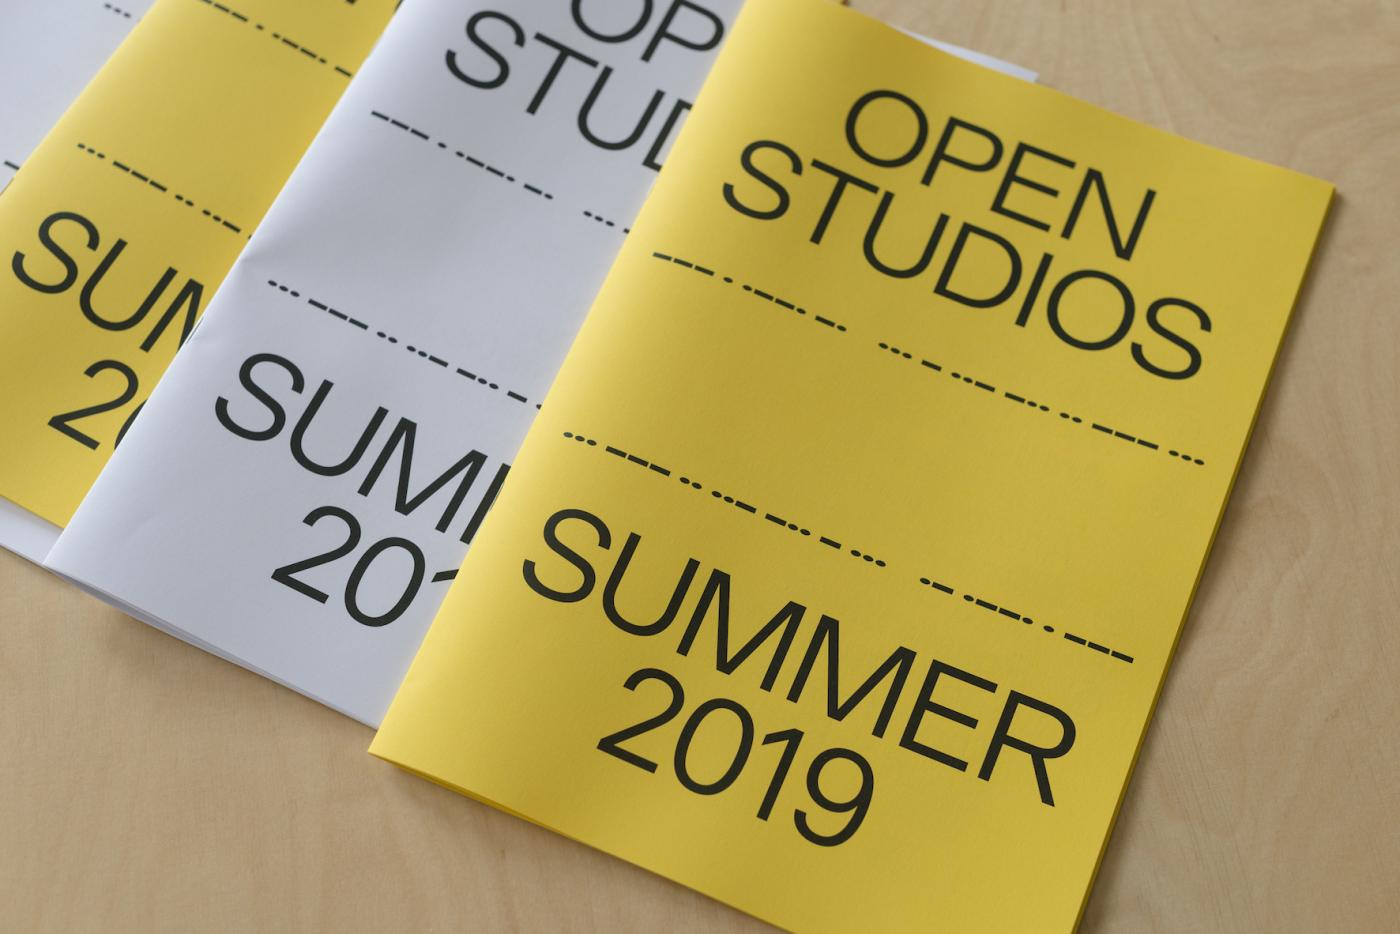 20190816 hiap summer open studio 160 48582288526 o3